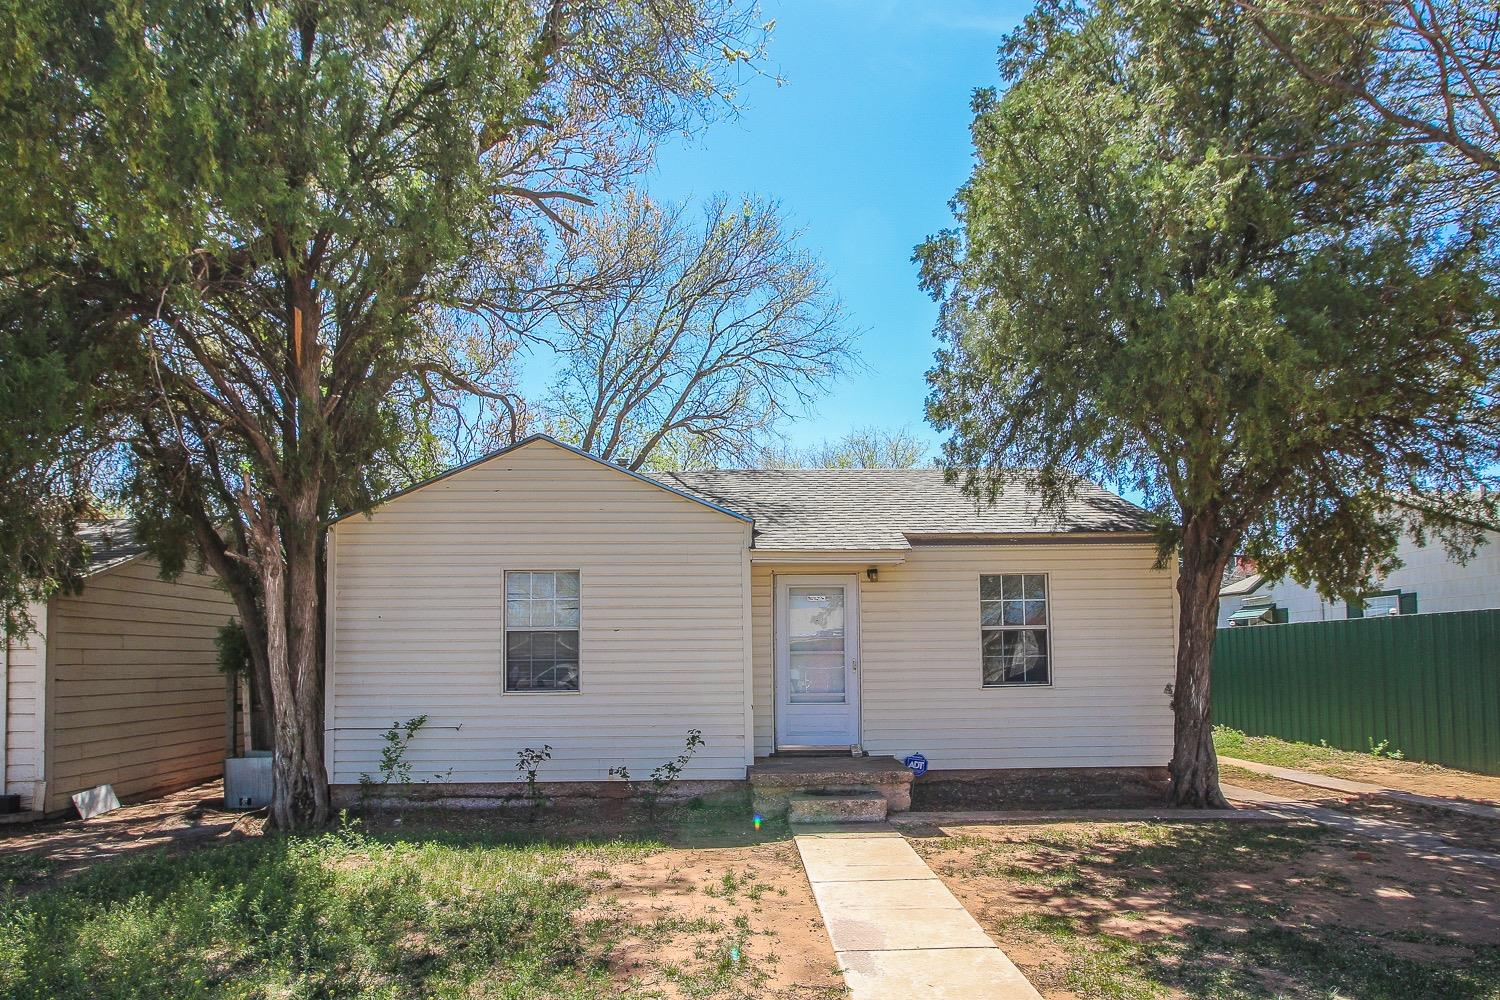 2511 1st Place, Lubbock in Lubbock County, TX 79415 Home for Sale